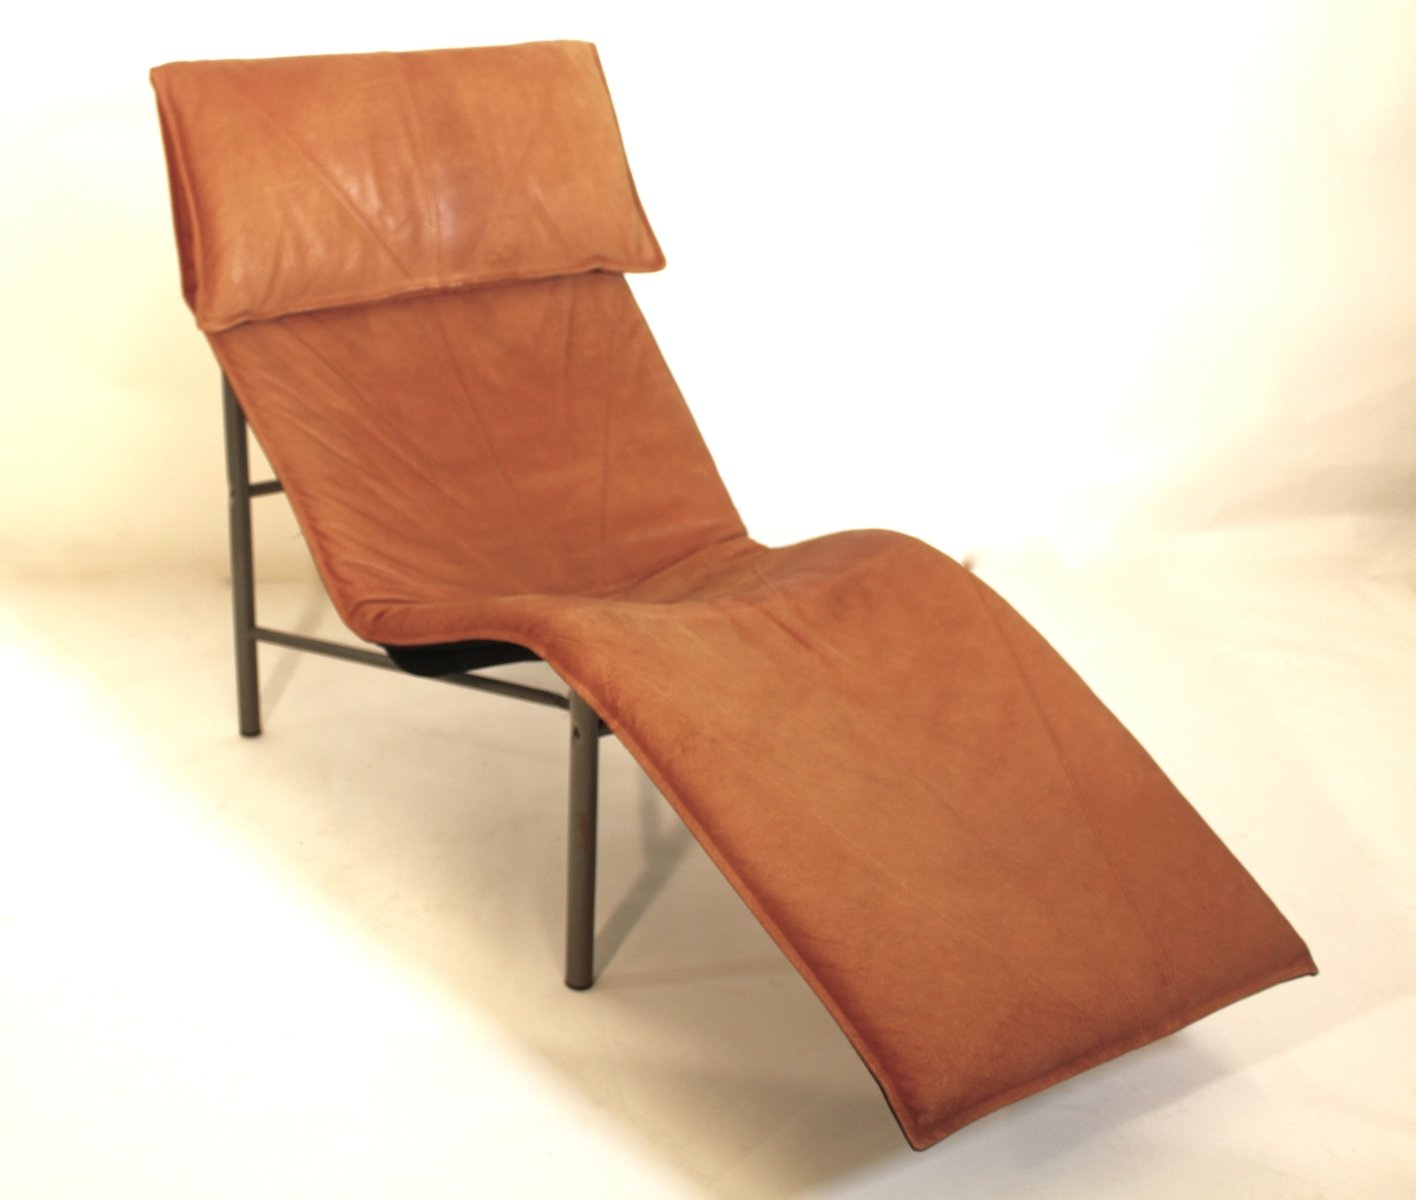 Brown leather chaise longue by tord bjorklund 1970s for for Brown chaise longue